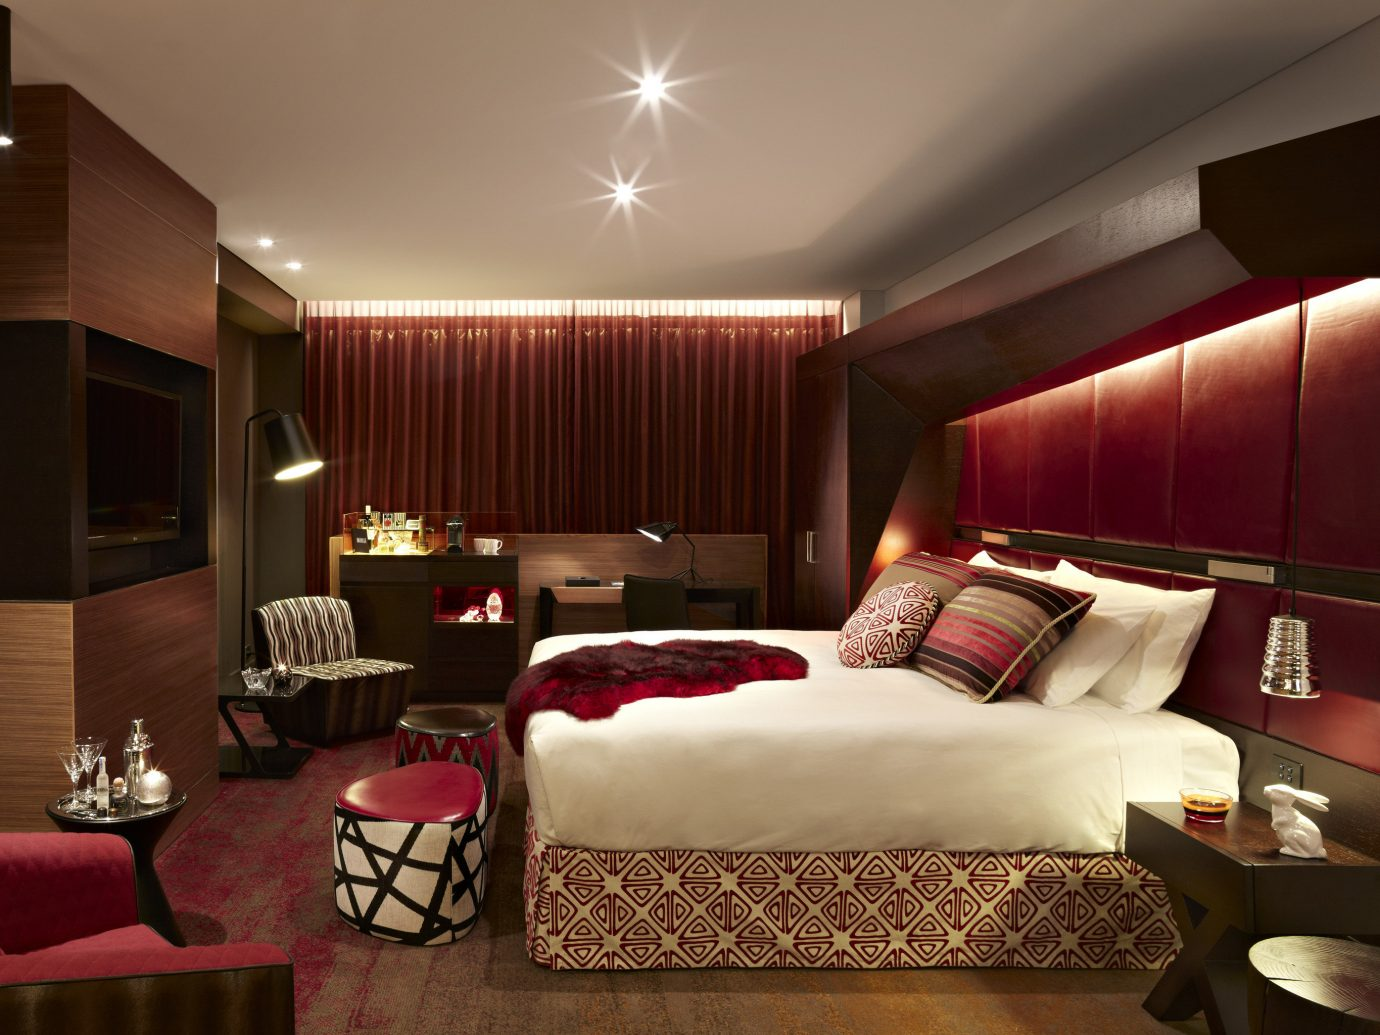 Hotels Romance wall indoor ceiling bed room red floor hotel Suite living room Bedroom interior design estate decorated furniture